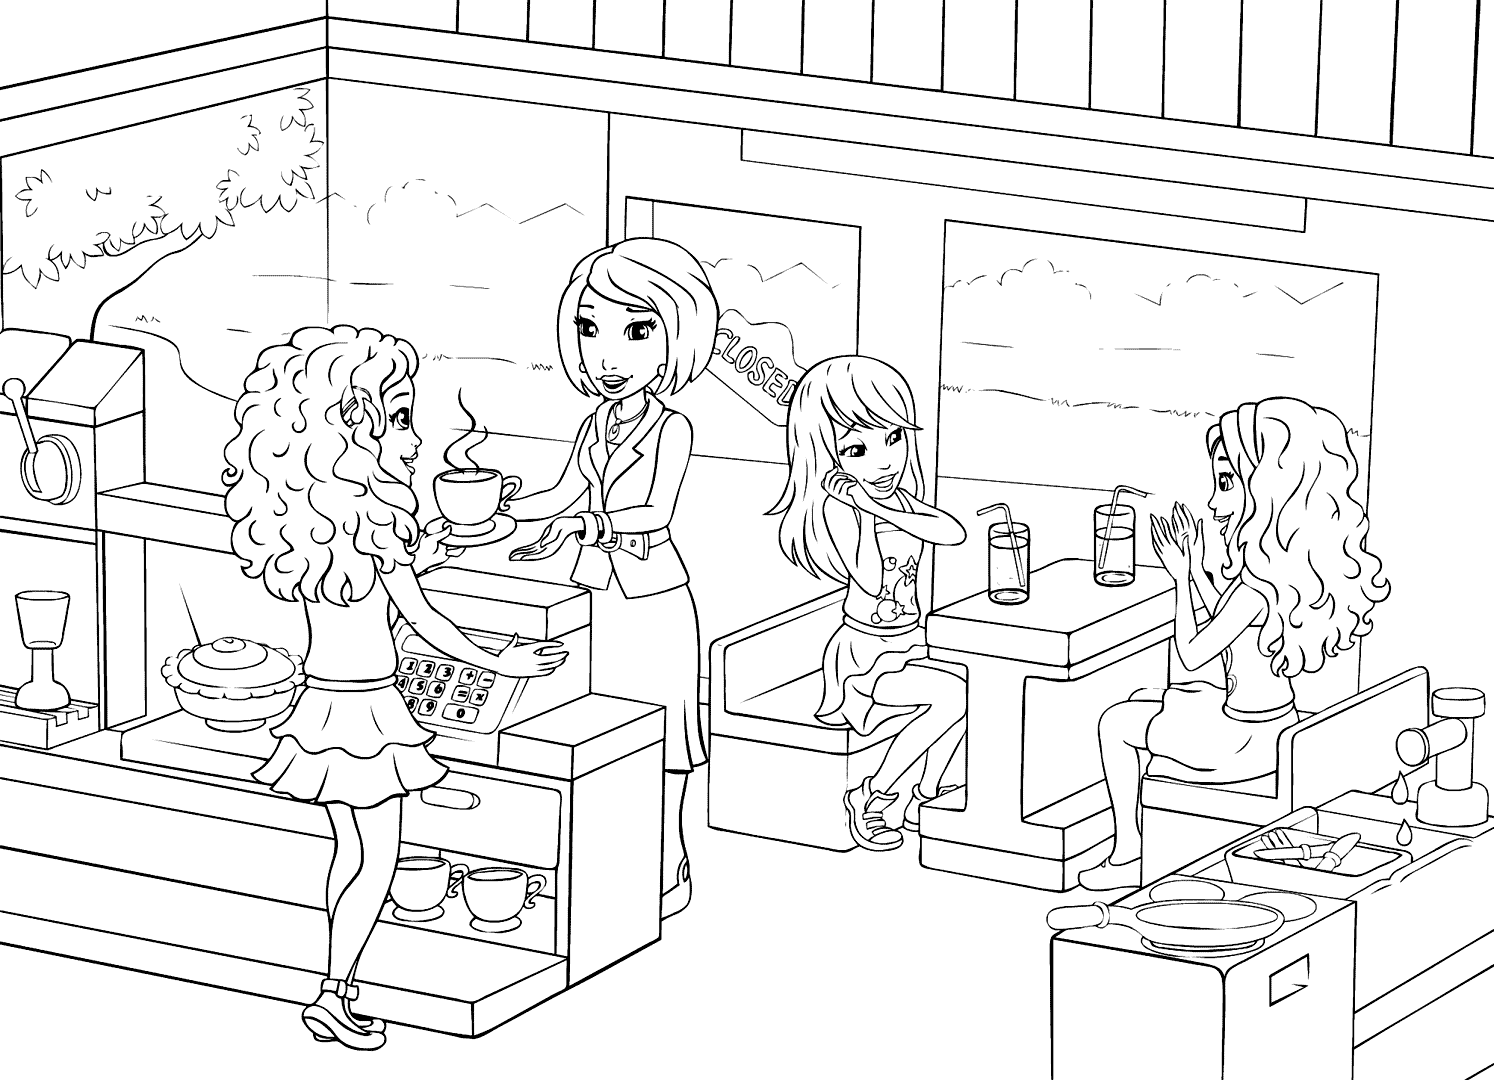 Lego Friends Restaurant Cafe Scene Coloring Page